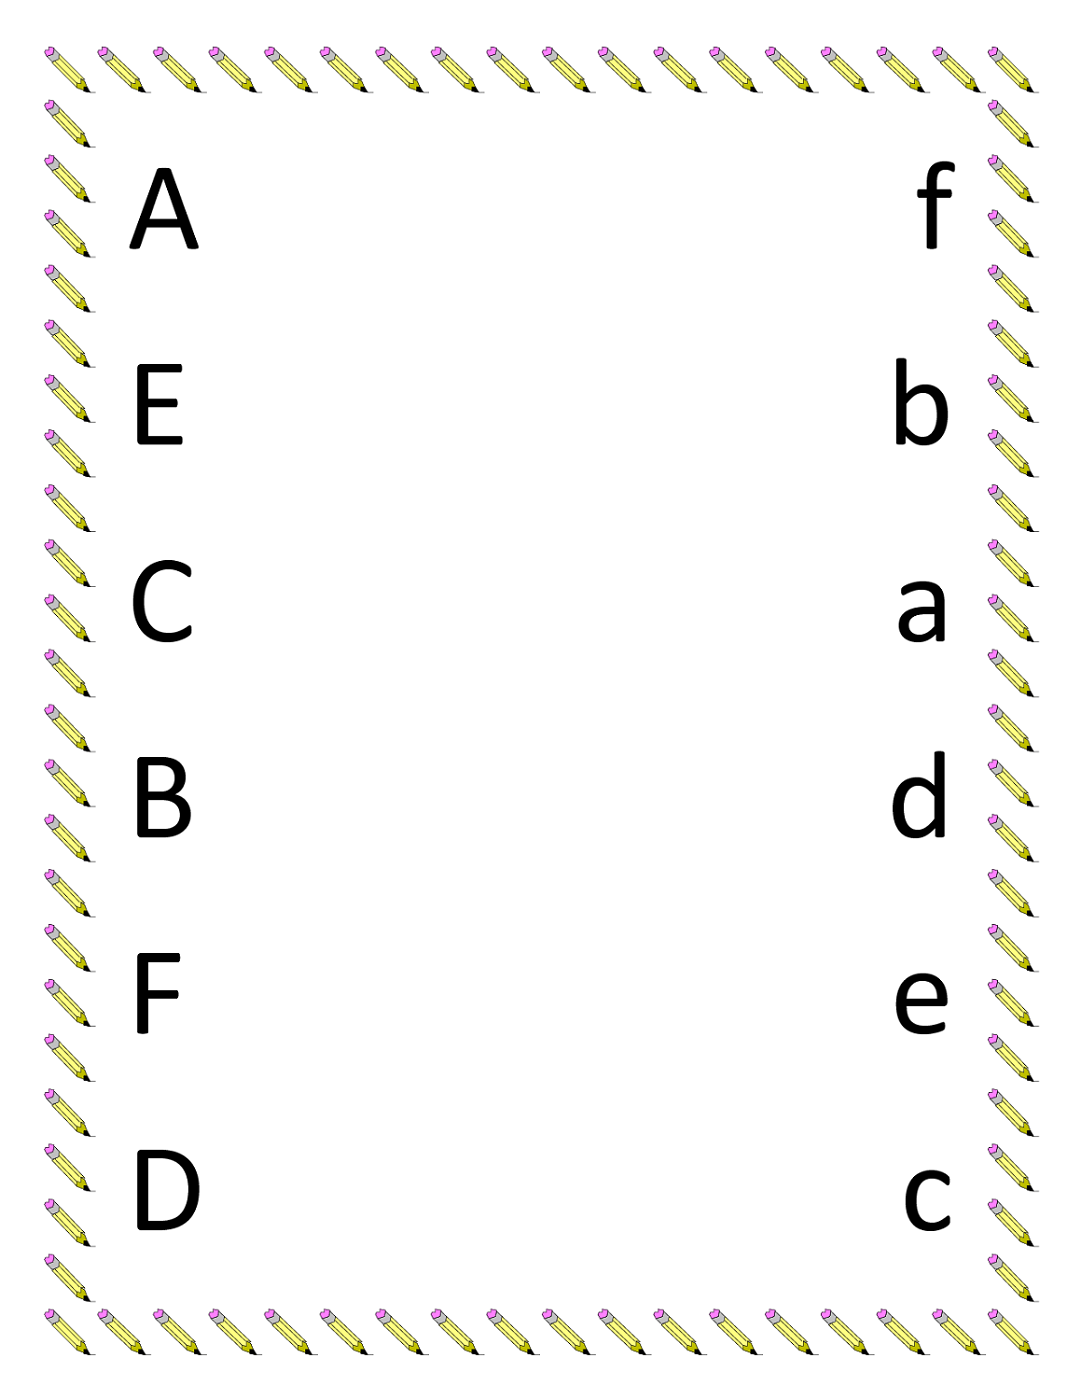 abc printables for preschoolers